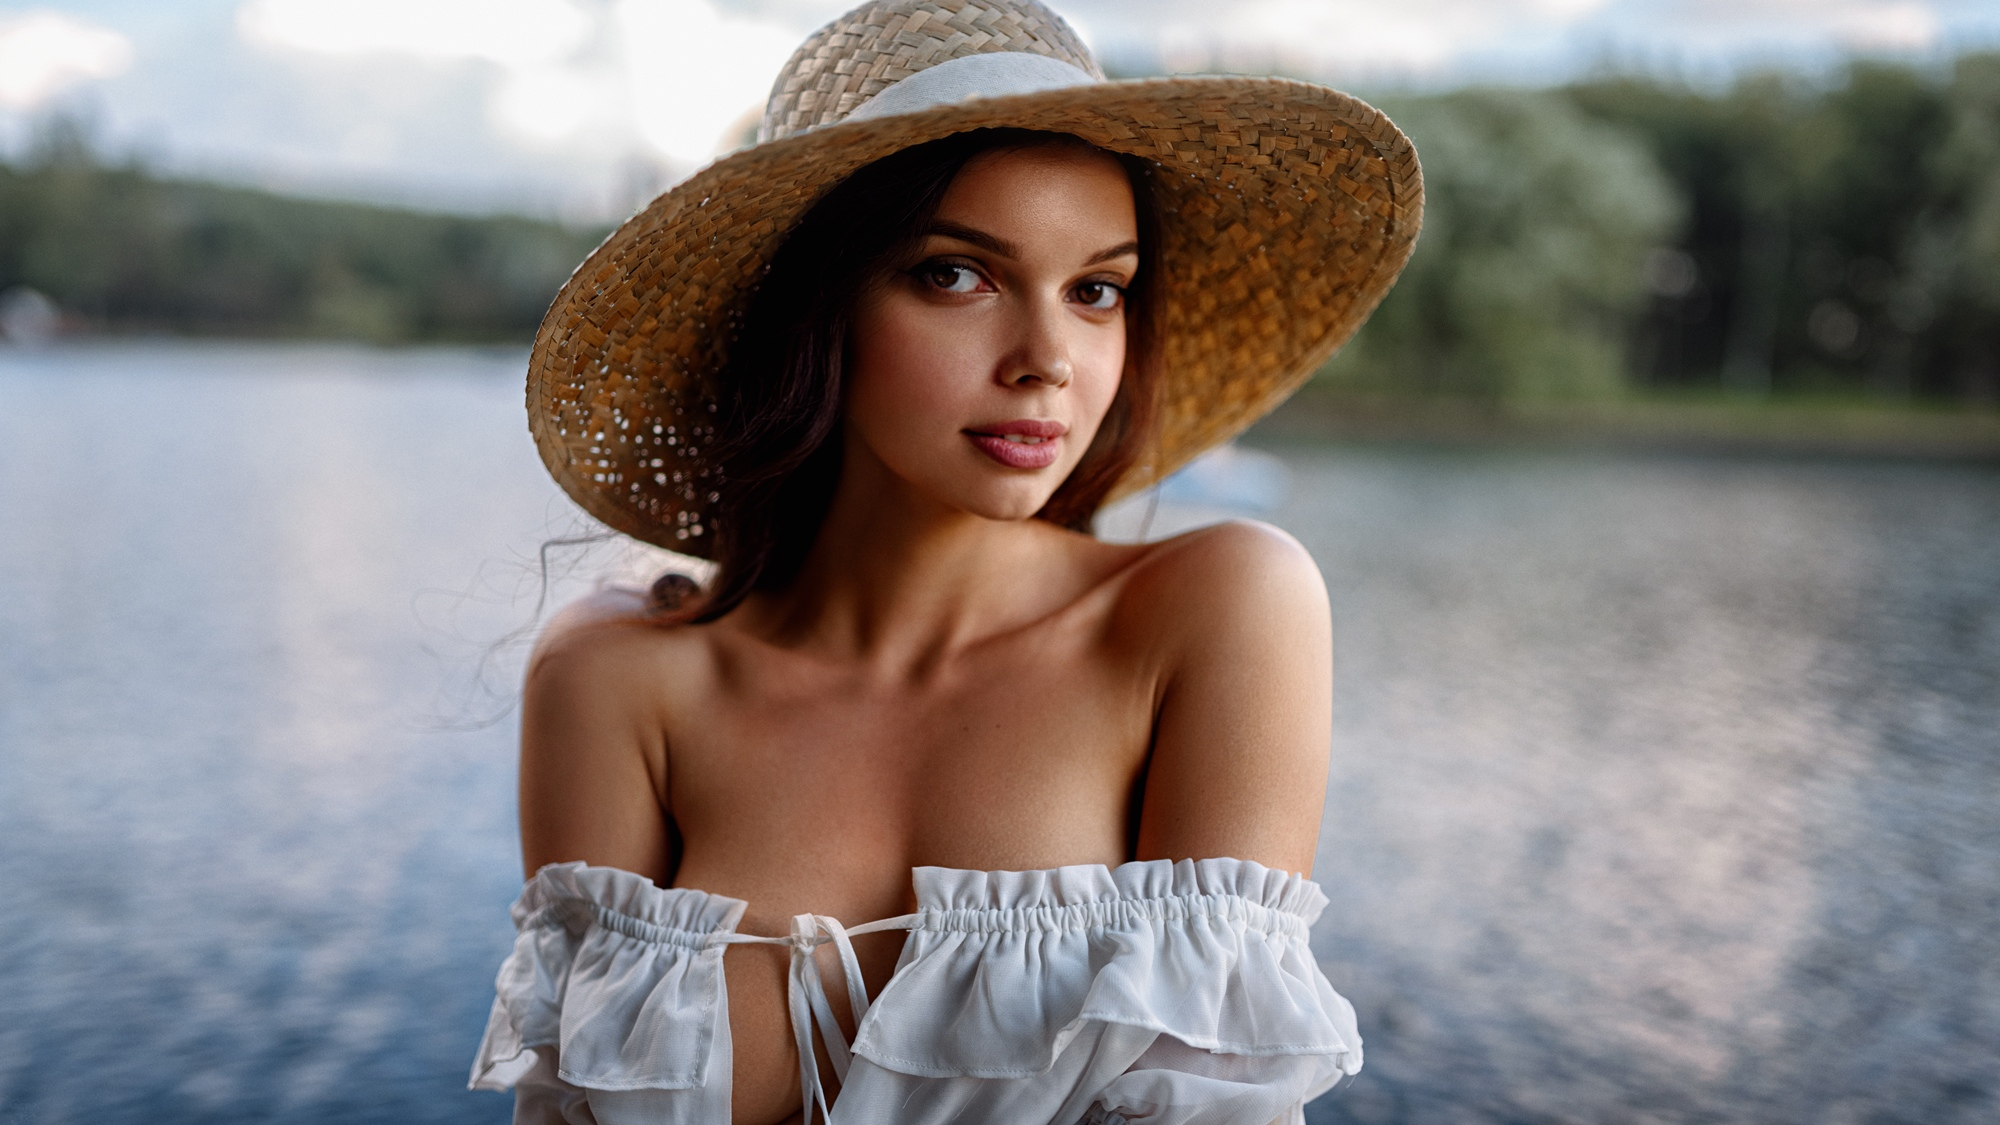 People 2000x1125 Angelika Svoykina women model brunette long hair brown eyes portrait looking at viewer bare shoulders cleavage no bra women with hats straw hat white tops lake depth of field smiling Georgy Chernyadyev outdoors